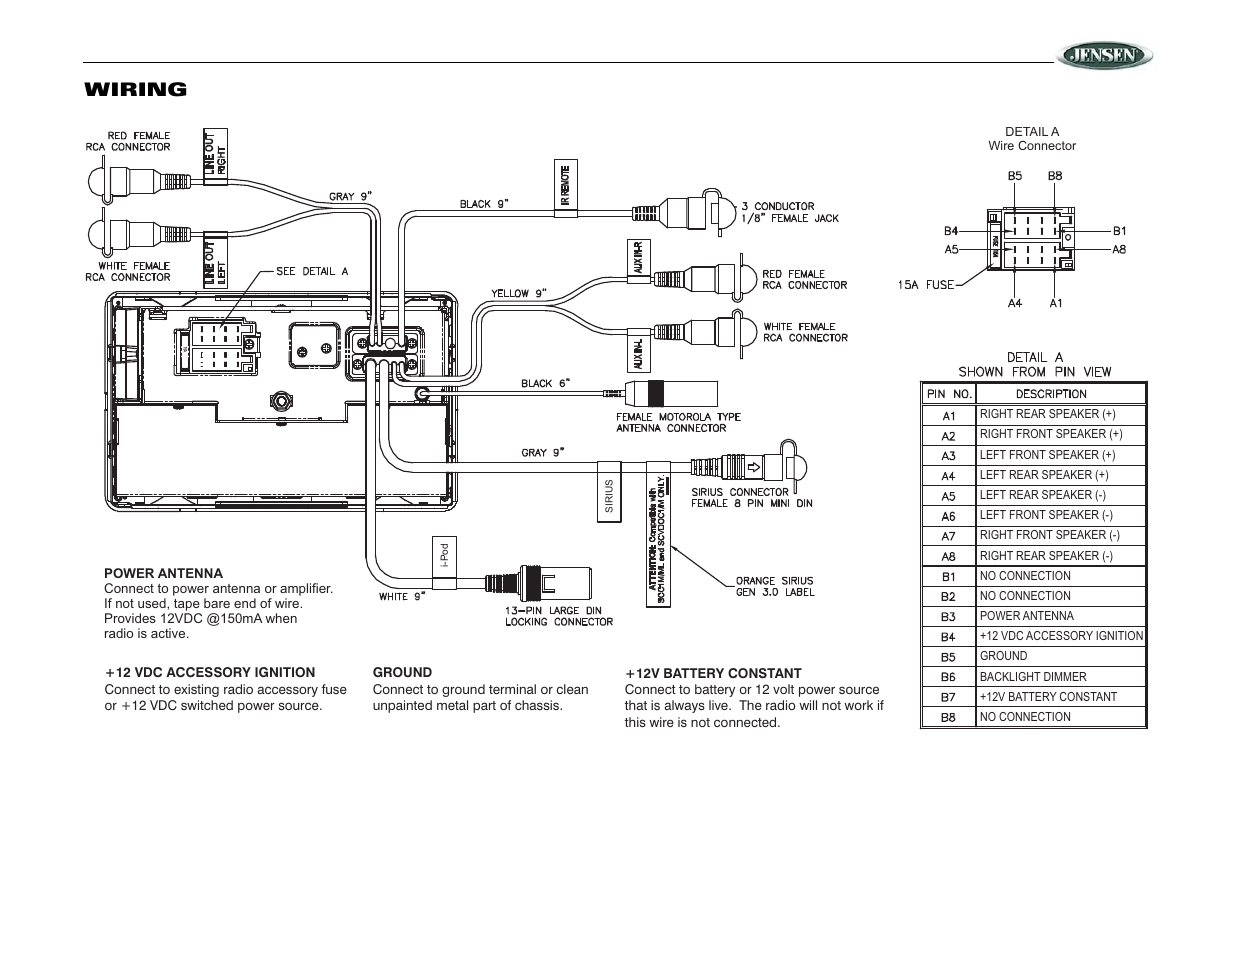 jensen car stereo wiring diagram jrv210, wiring | jensen jrv210 user manual | page 5 / 20 jensen car audio wiring diagram #3